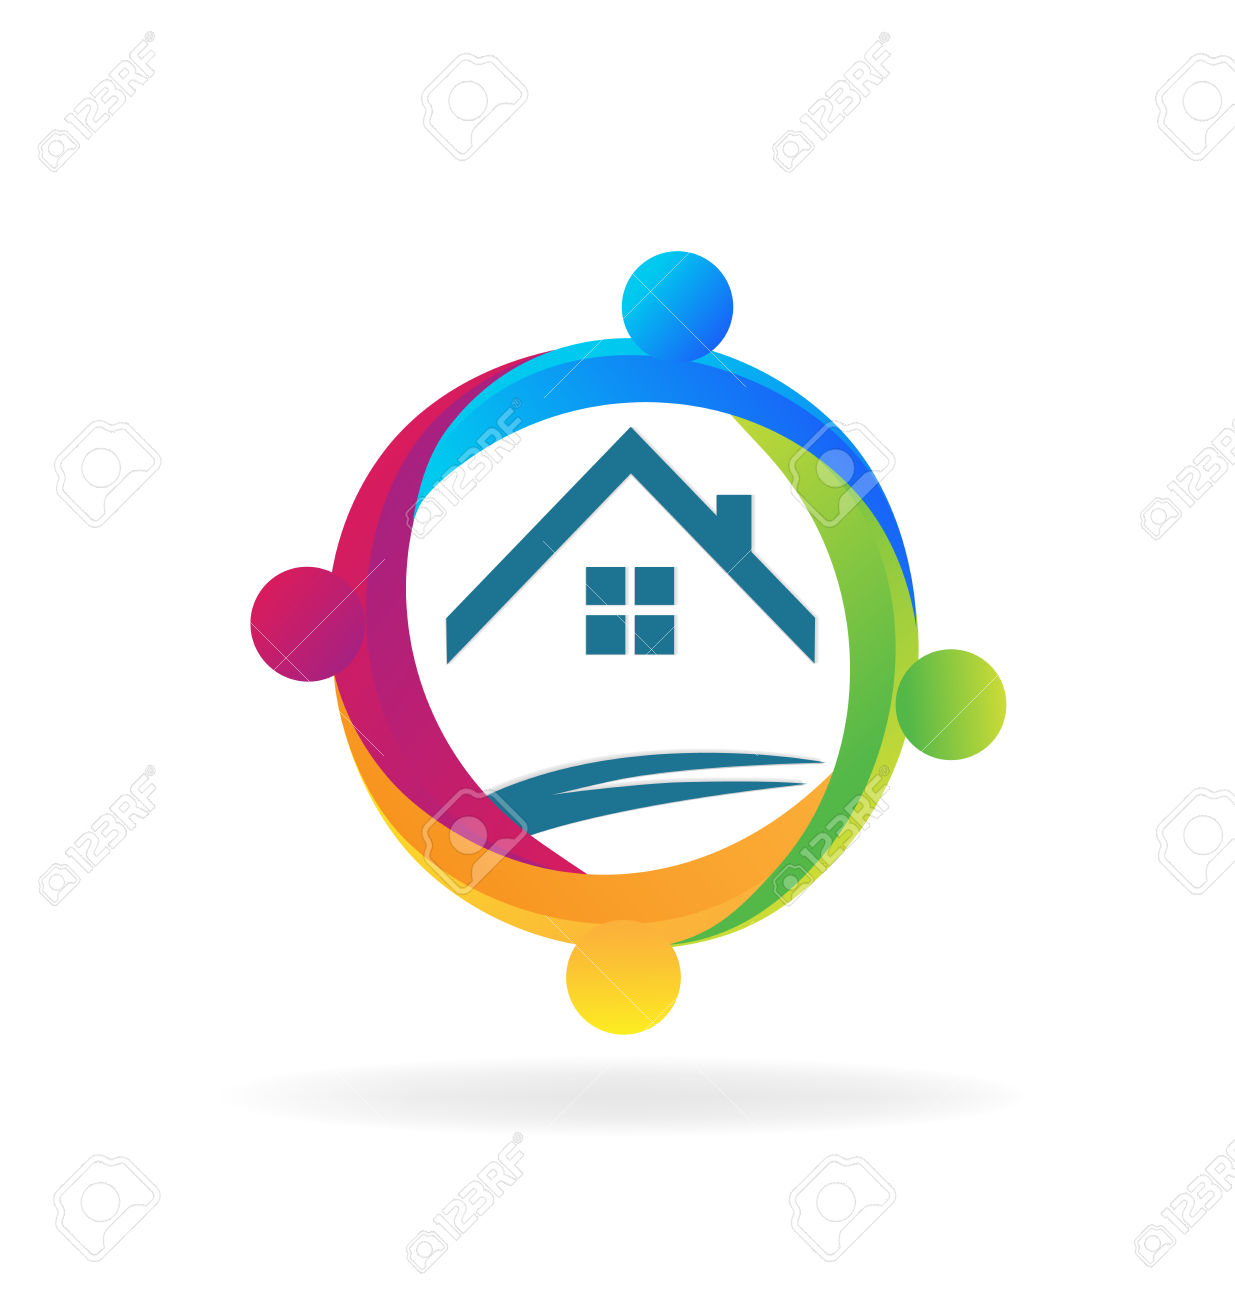 Teamwork People Around A House Logo Vector Design Royalty Free.